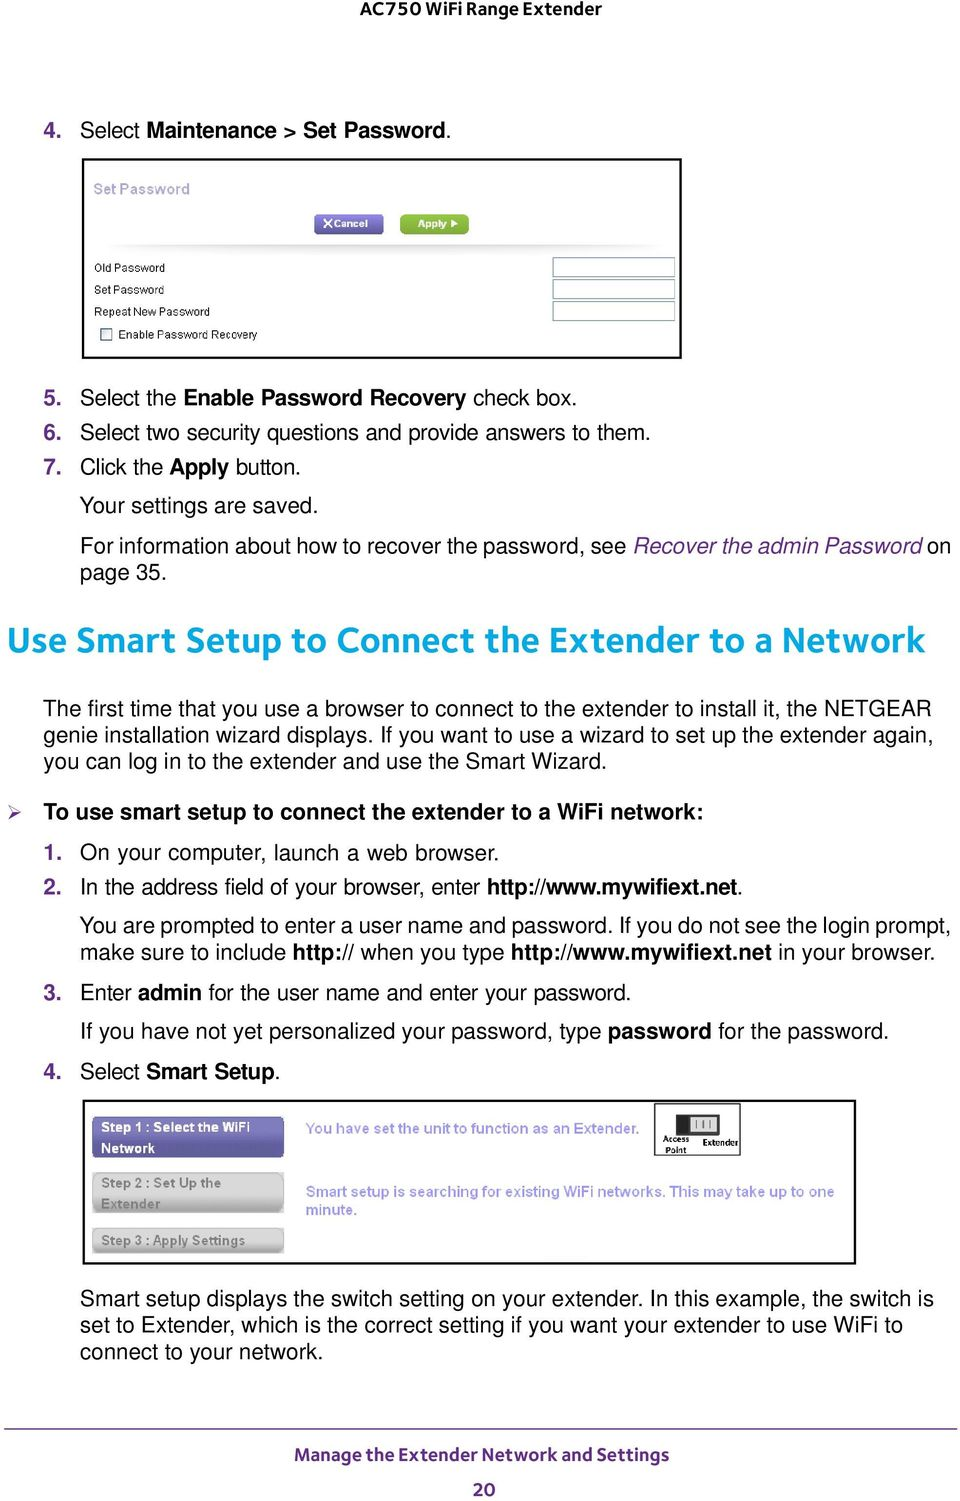 Use Smart Setup to Connect the Extender to a Network The first time that you use a browser to connect to the extender to install it, the NETGEAR genie installation wizard displays.